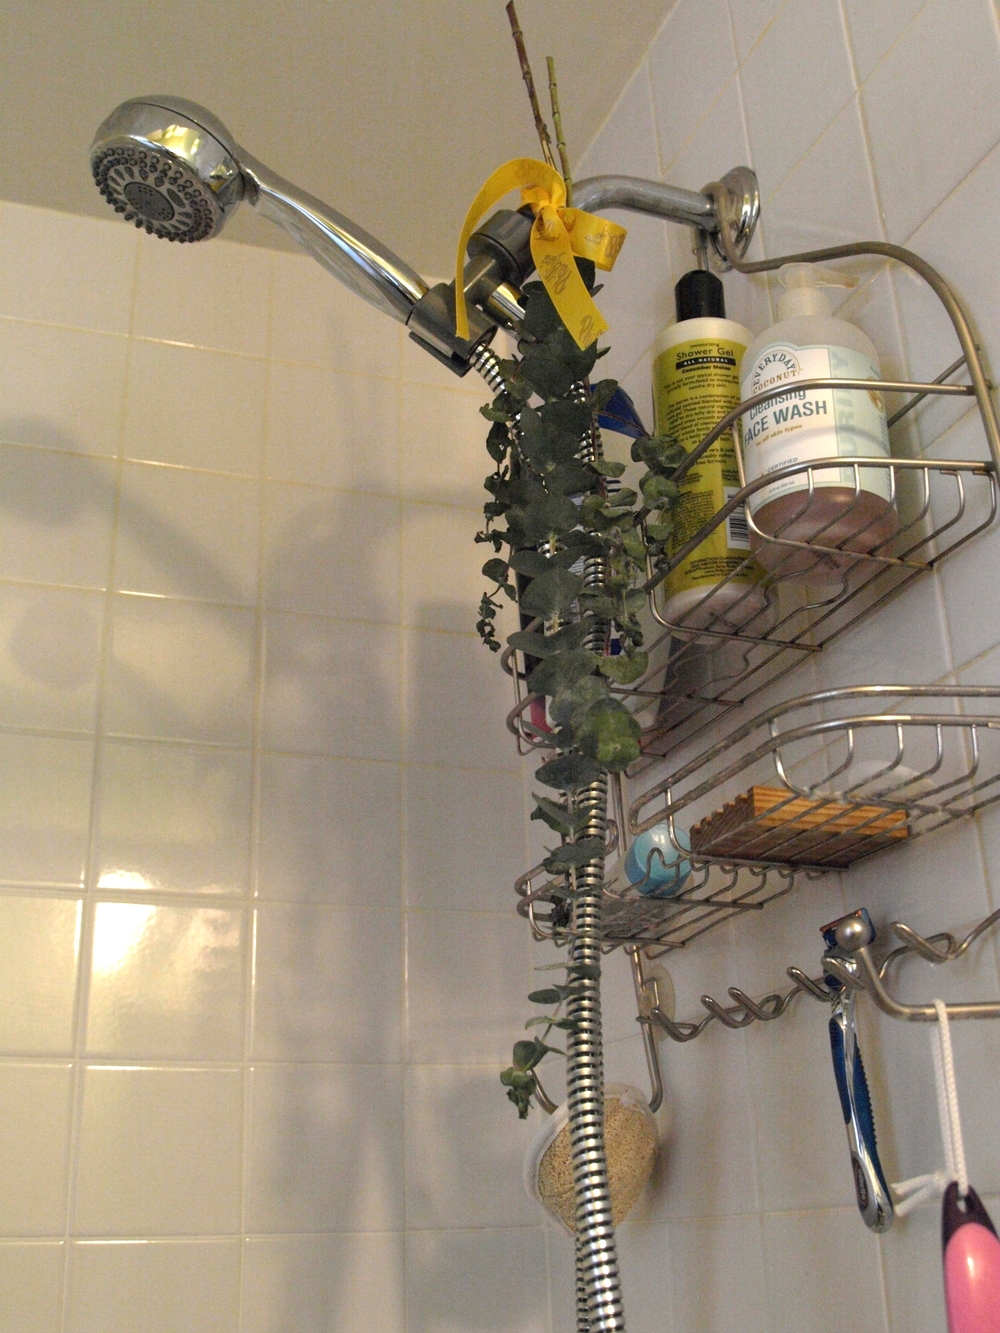 A steamy shower + fresh eucalyptus leaves = sweet relief & healthy breathing!